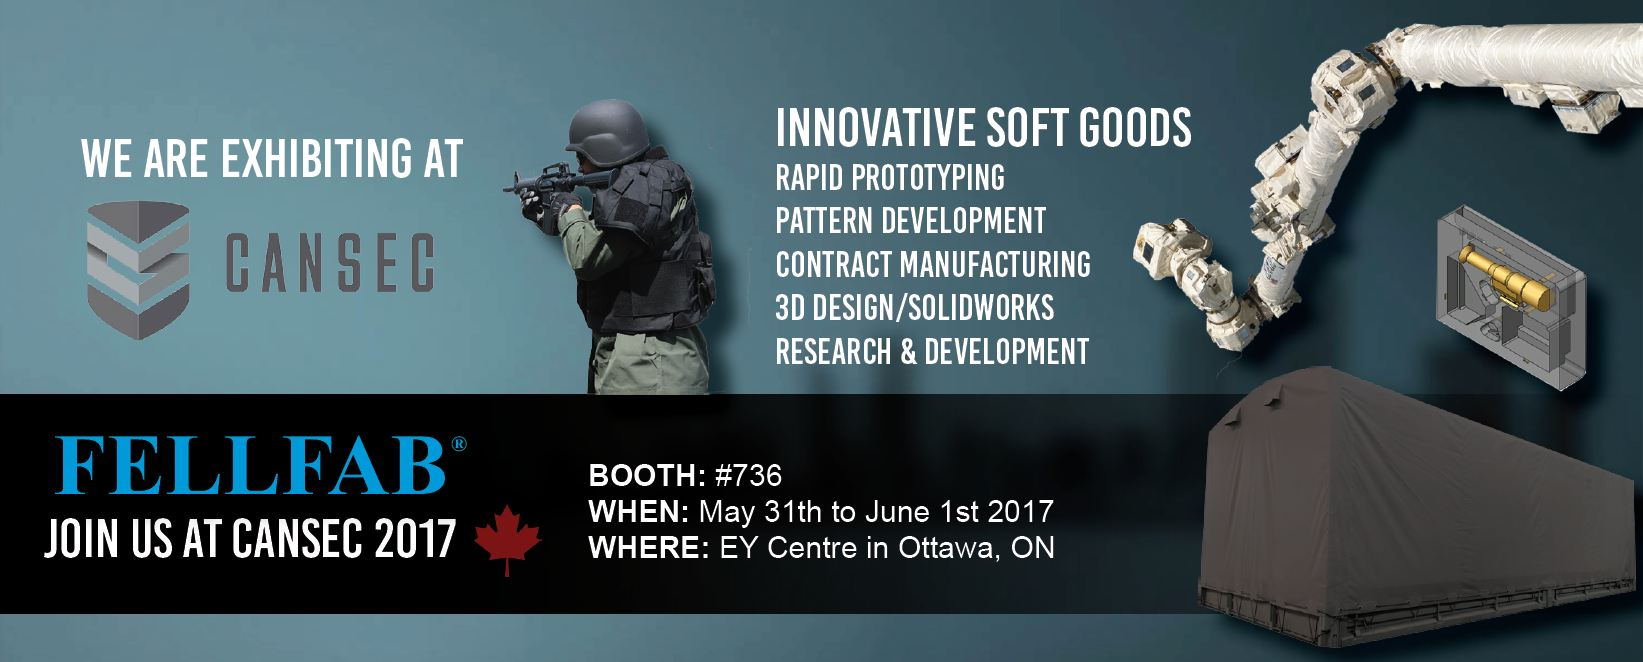 FELLFAB<sup>®</sup> Will Be Exhibiting At CANSEC 2017 in Ottawa, Ontario. Visit us at Booth #736